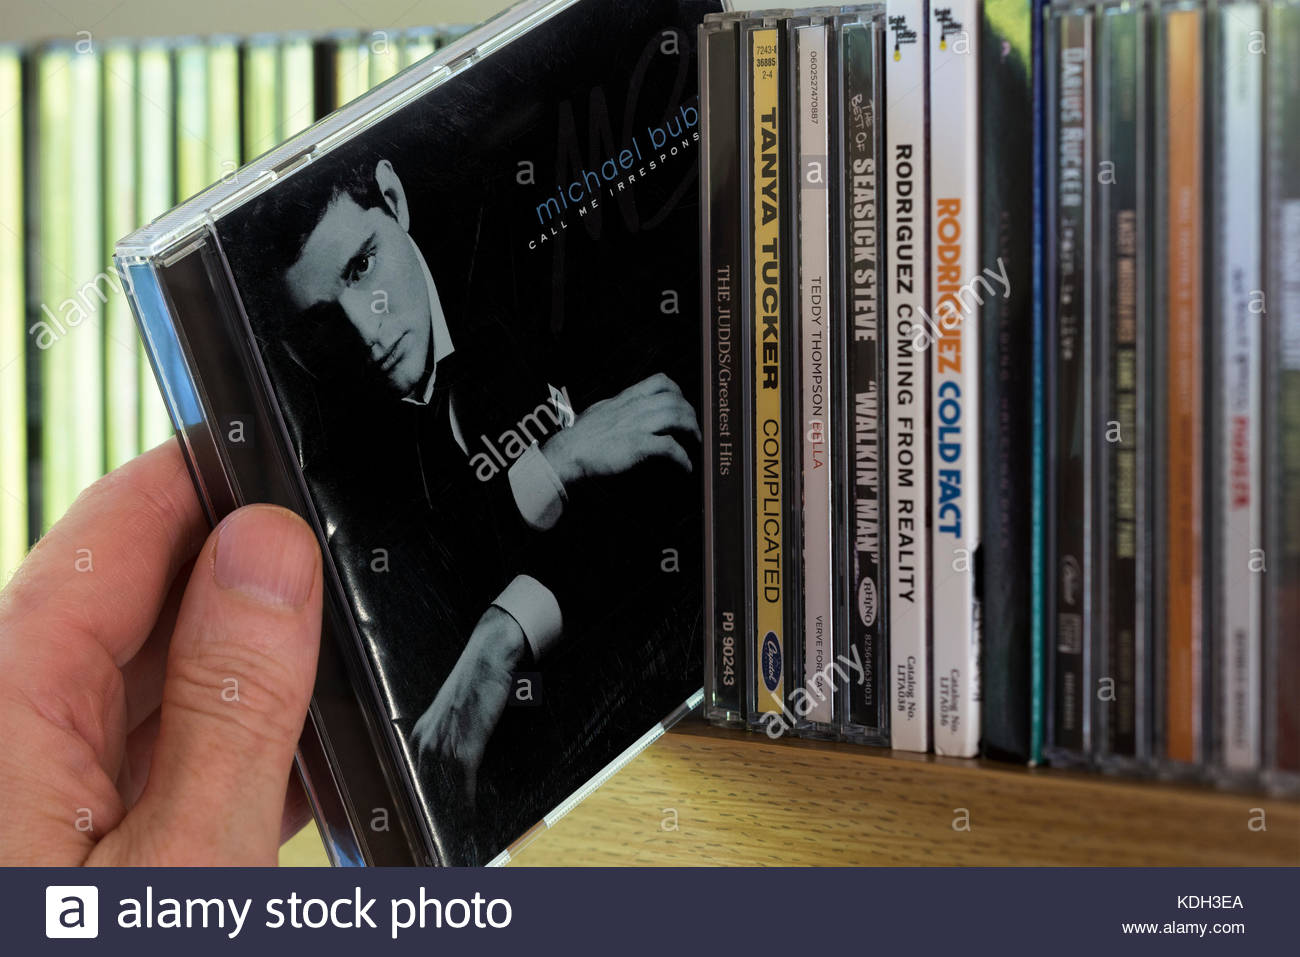 Call Me Irresponsible, Michael Bublé CD being chosen from a shelf of other CD's, Dorset, England - Stock Image